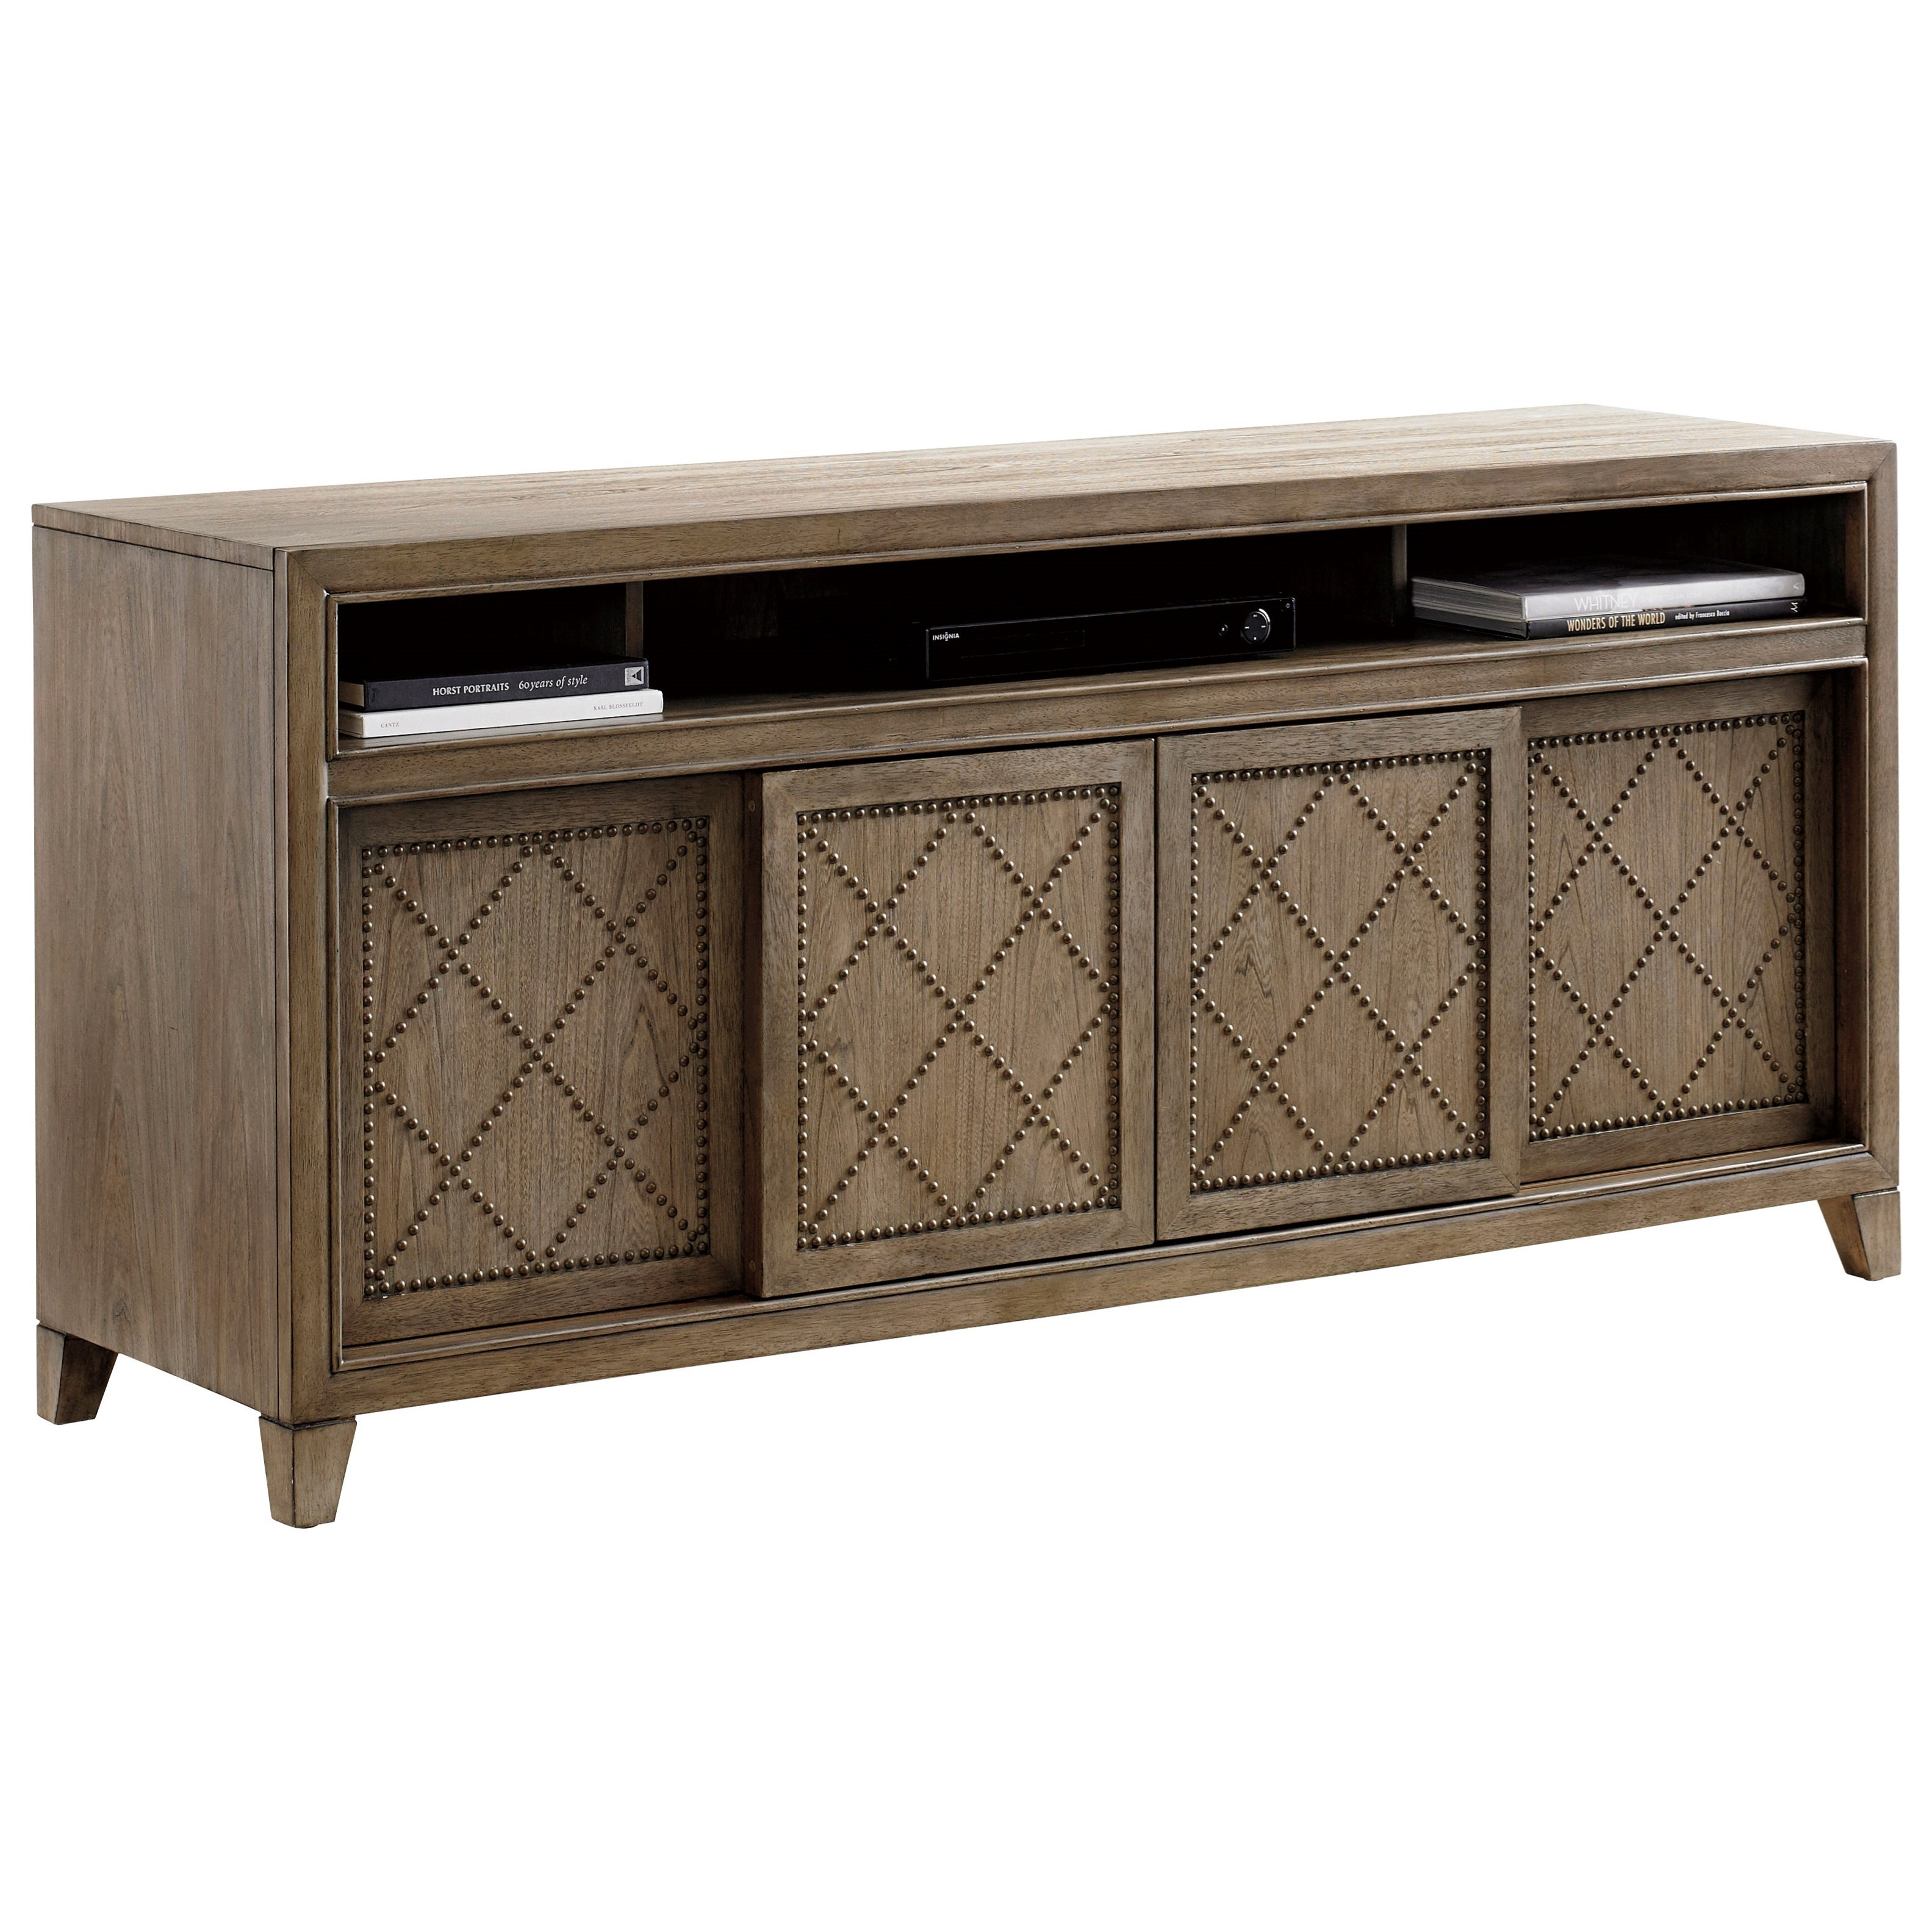 Cypress Point Fairbanks Media Console by Tommy Bahama Home at Baer's Furniture